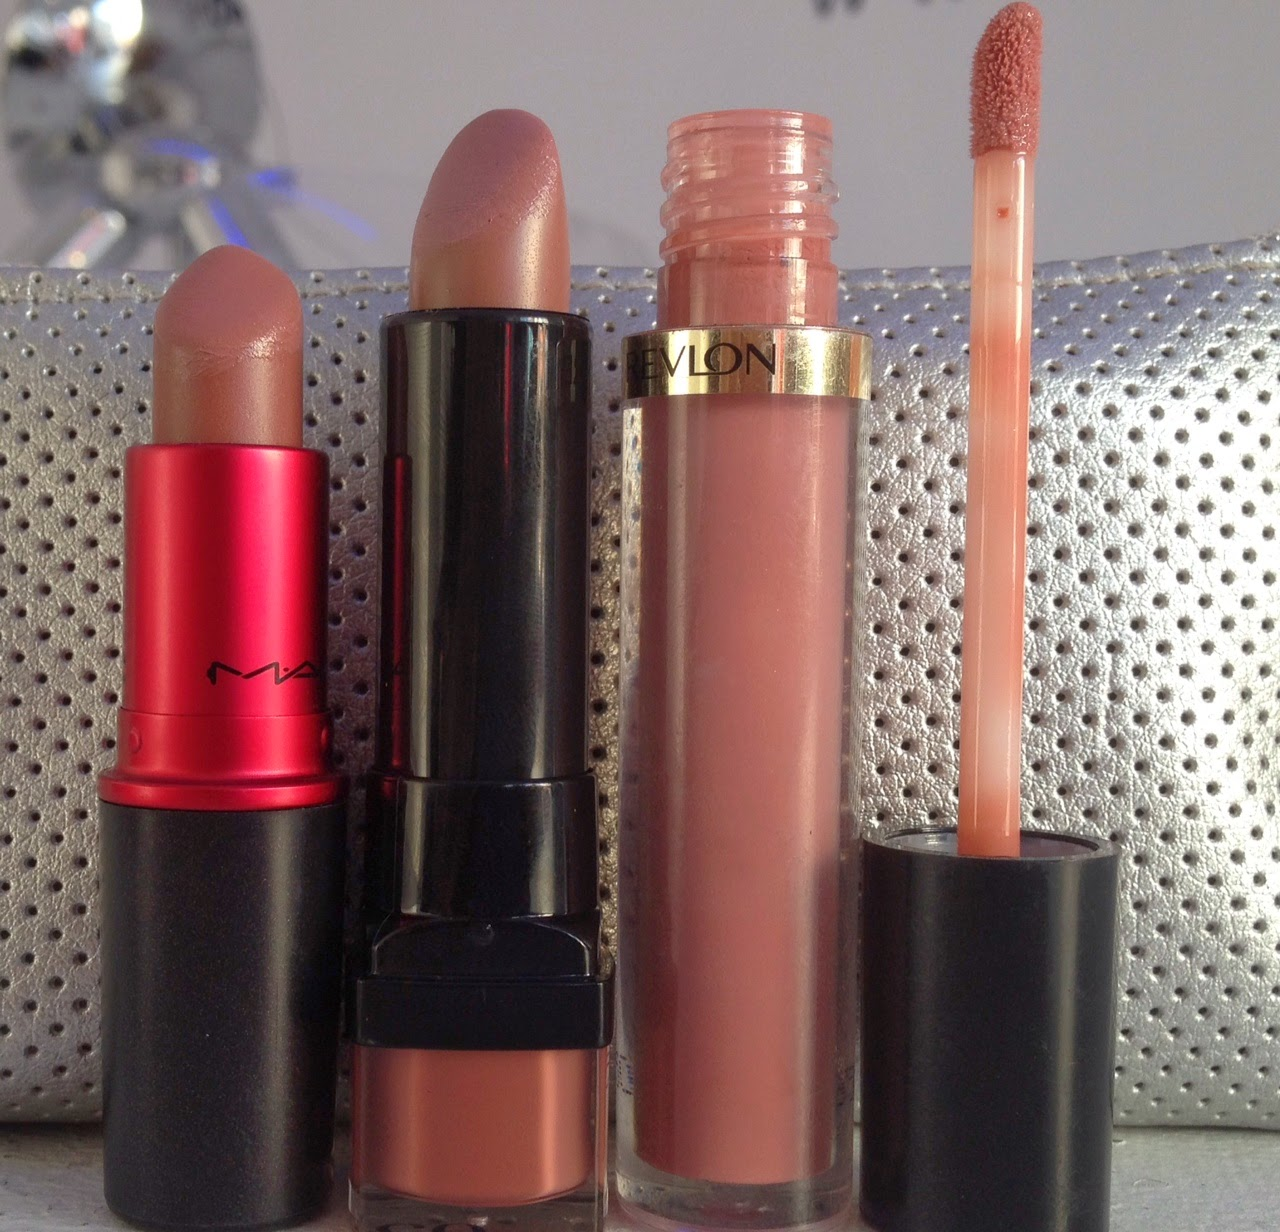 Loreal Fairest Nude dupe for Mac Viva Glam II Beauty Makeup in Mac Viva Glam Ii Dupe